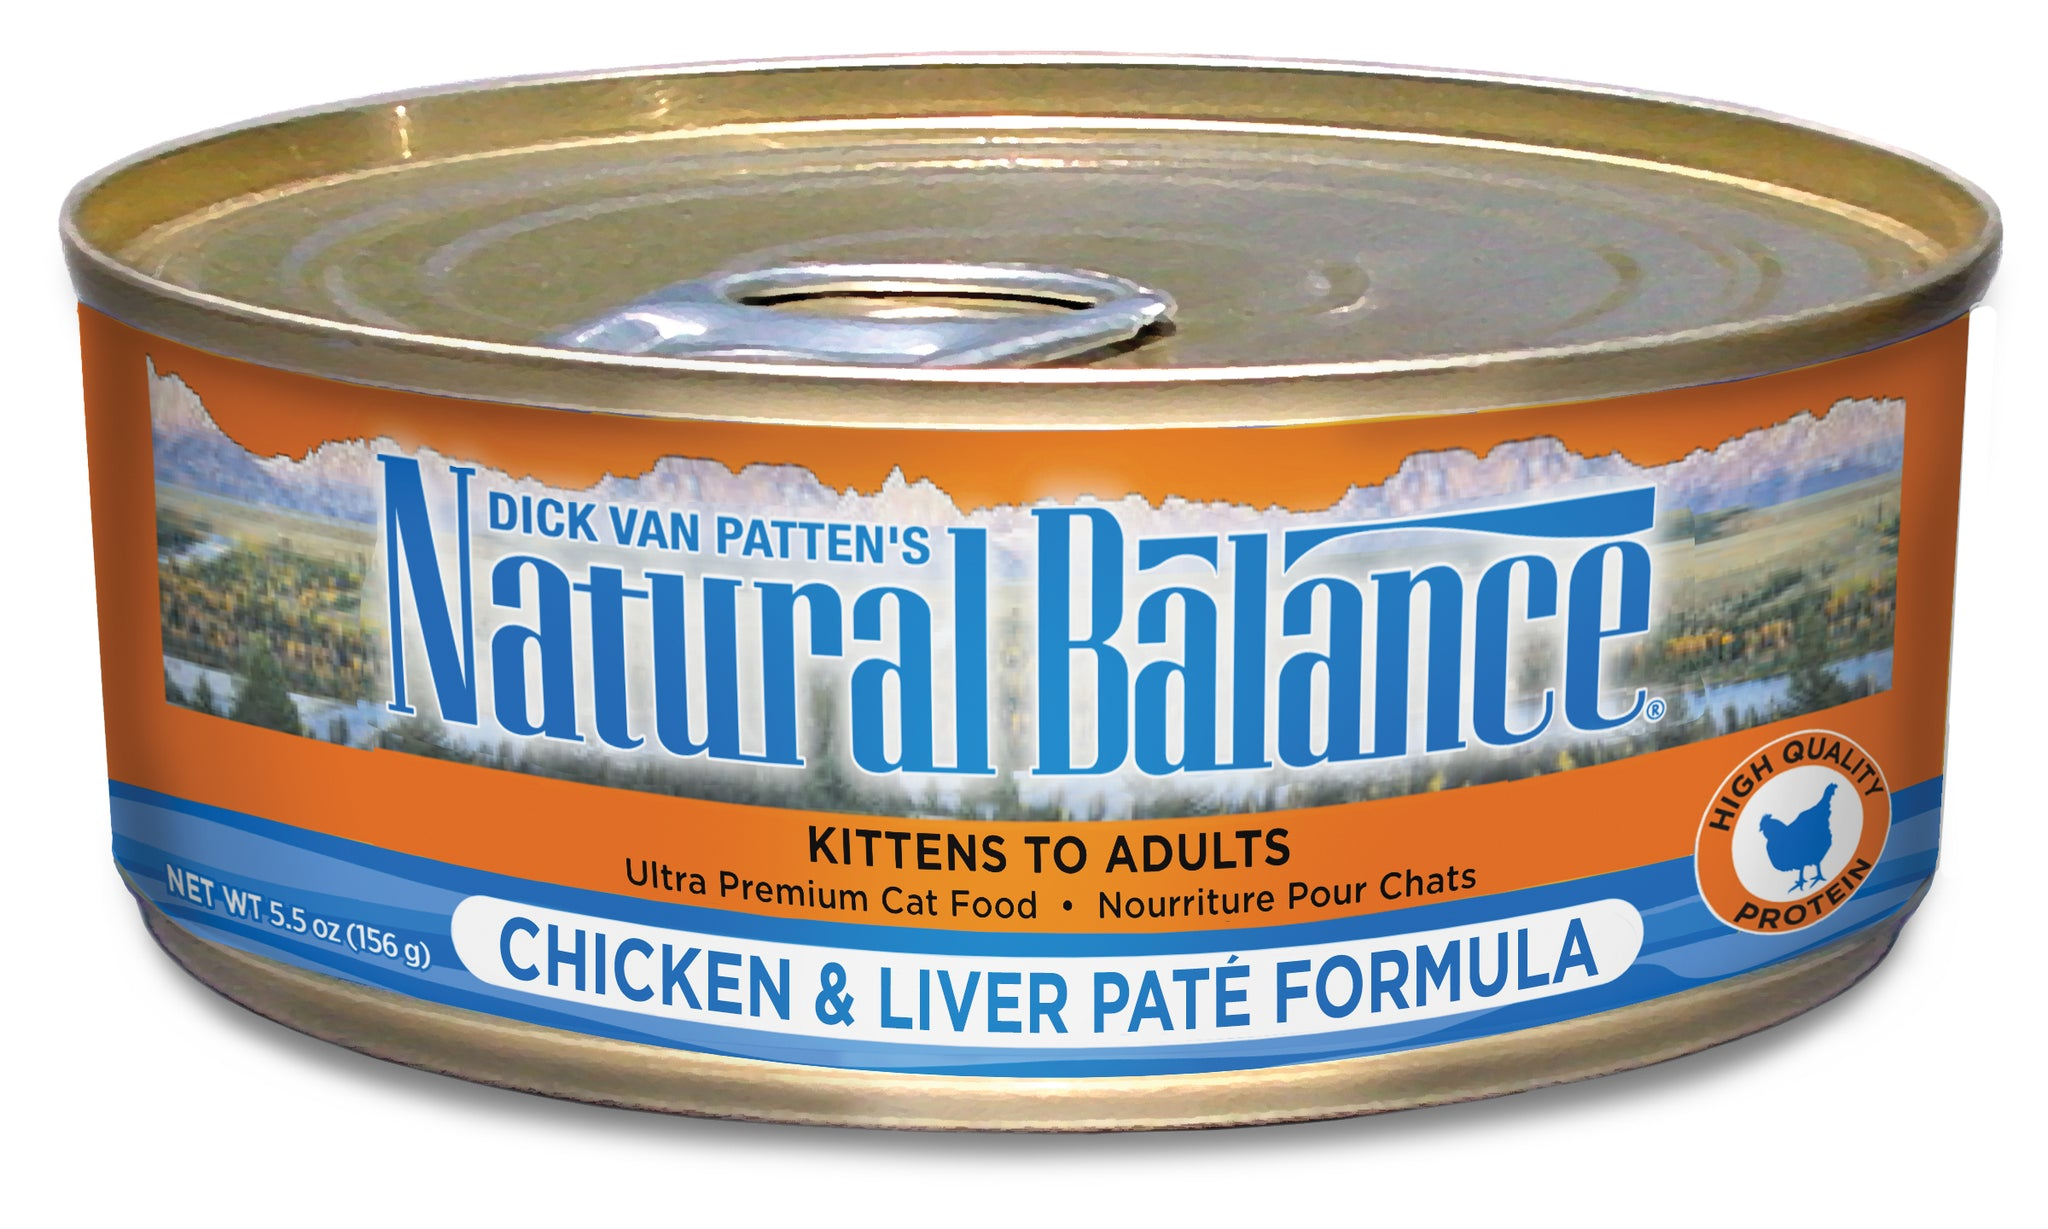 Natural Balance Ultra Premium Chicken & Liver Pate Canned Wet Cat Food 5.5-oz at NJPetSupply.com